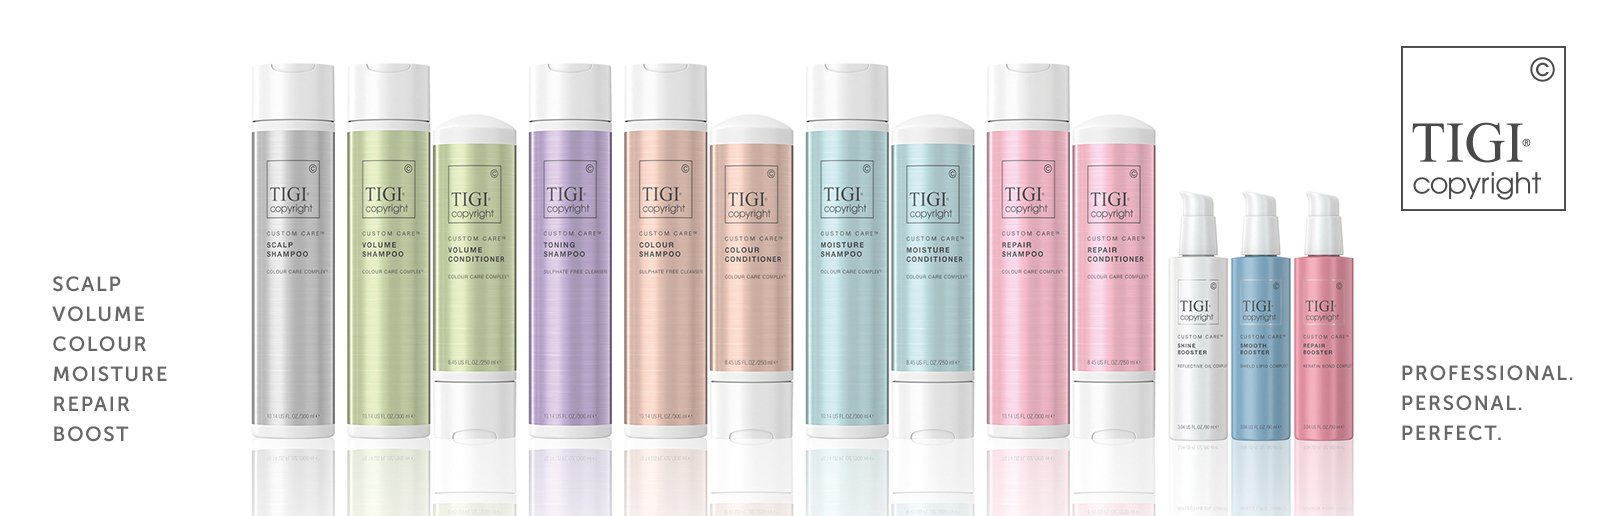 TIGI Copyright Care Retail Product Range